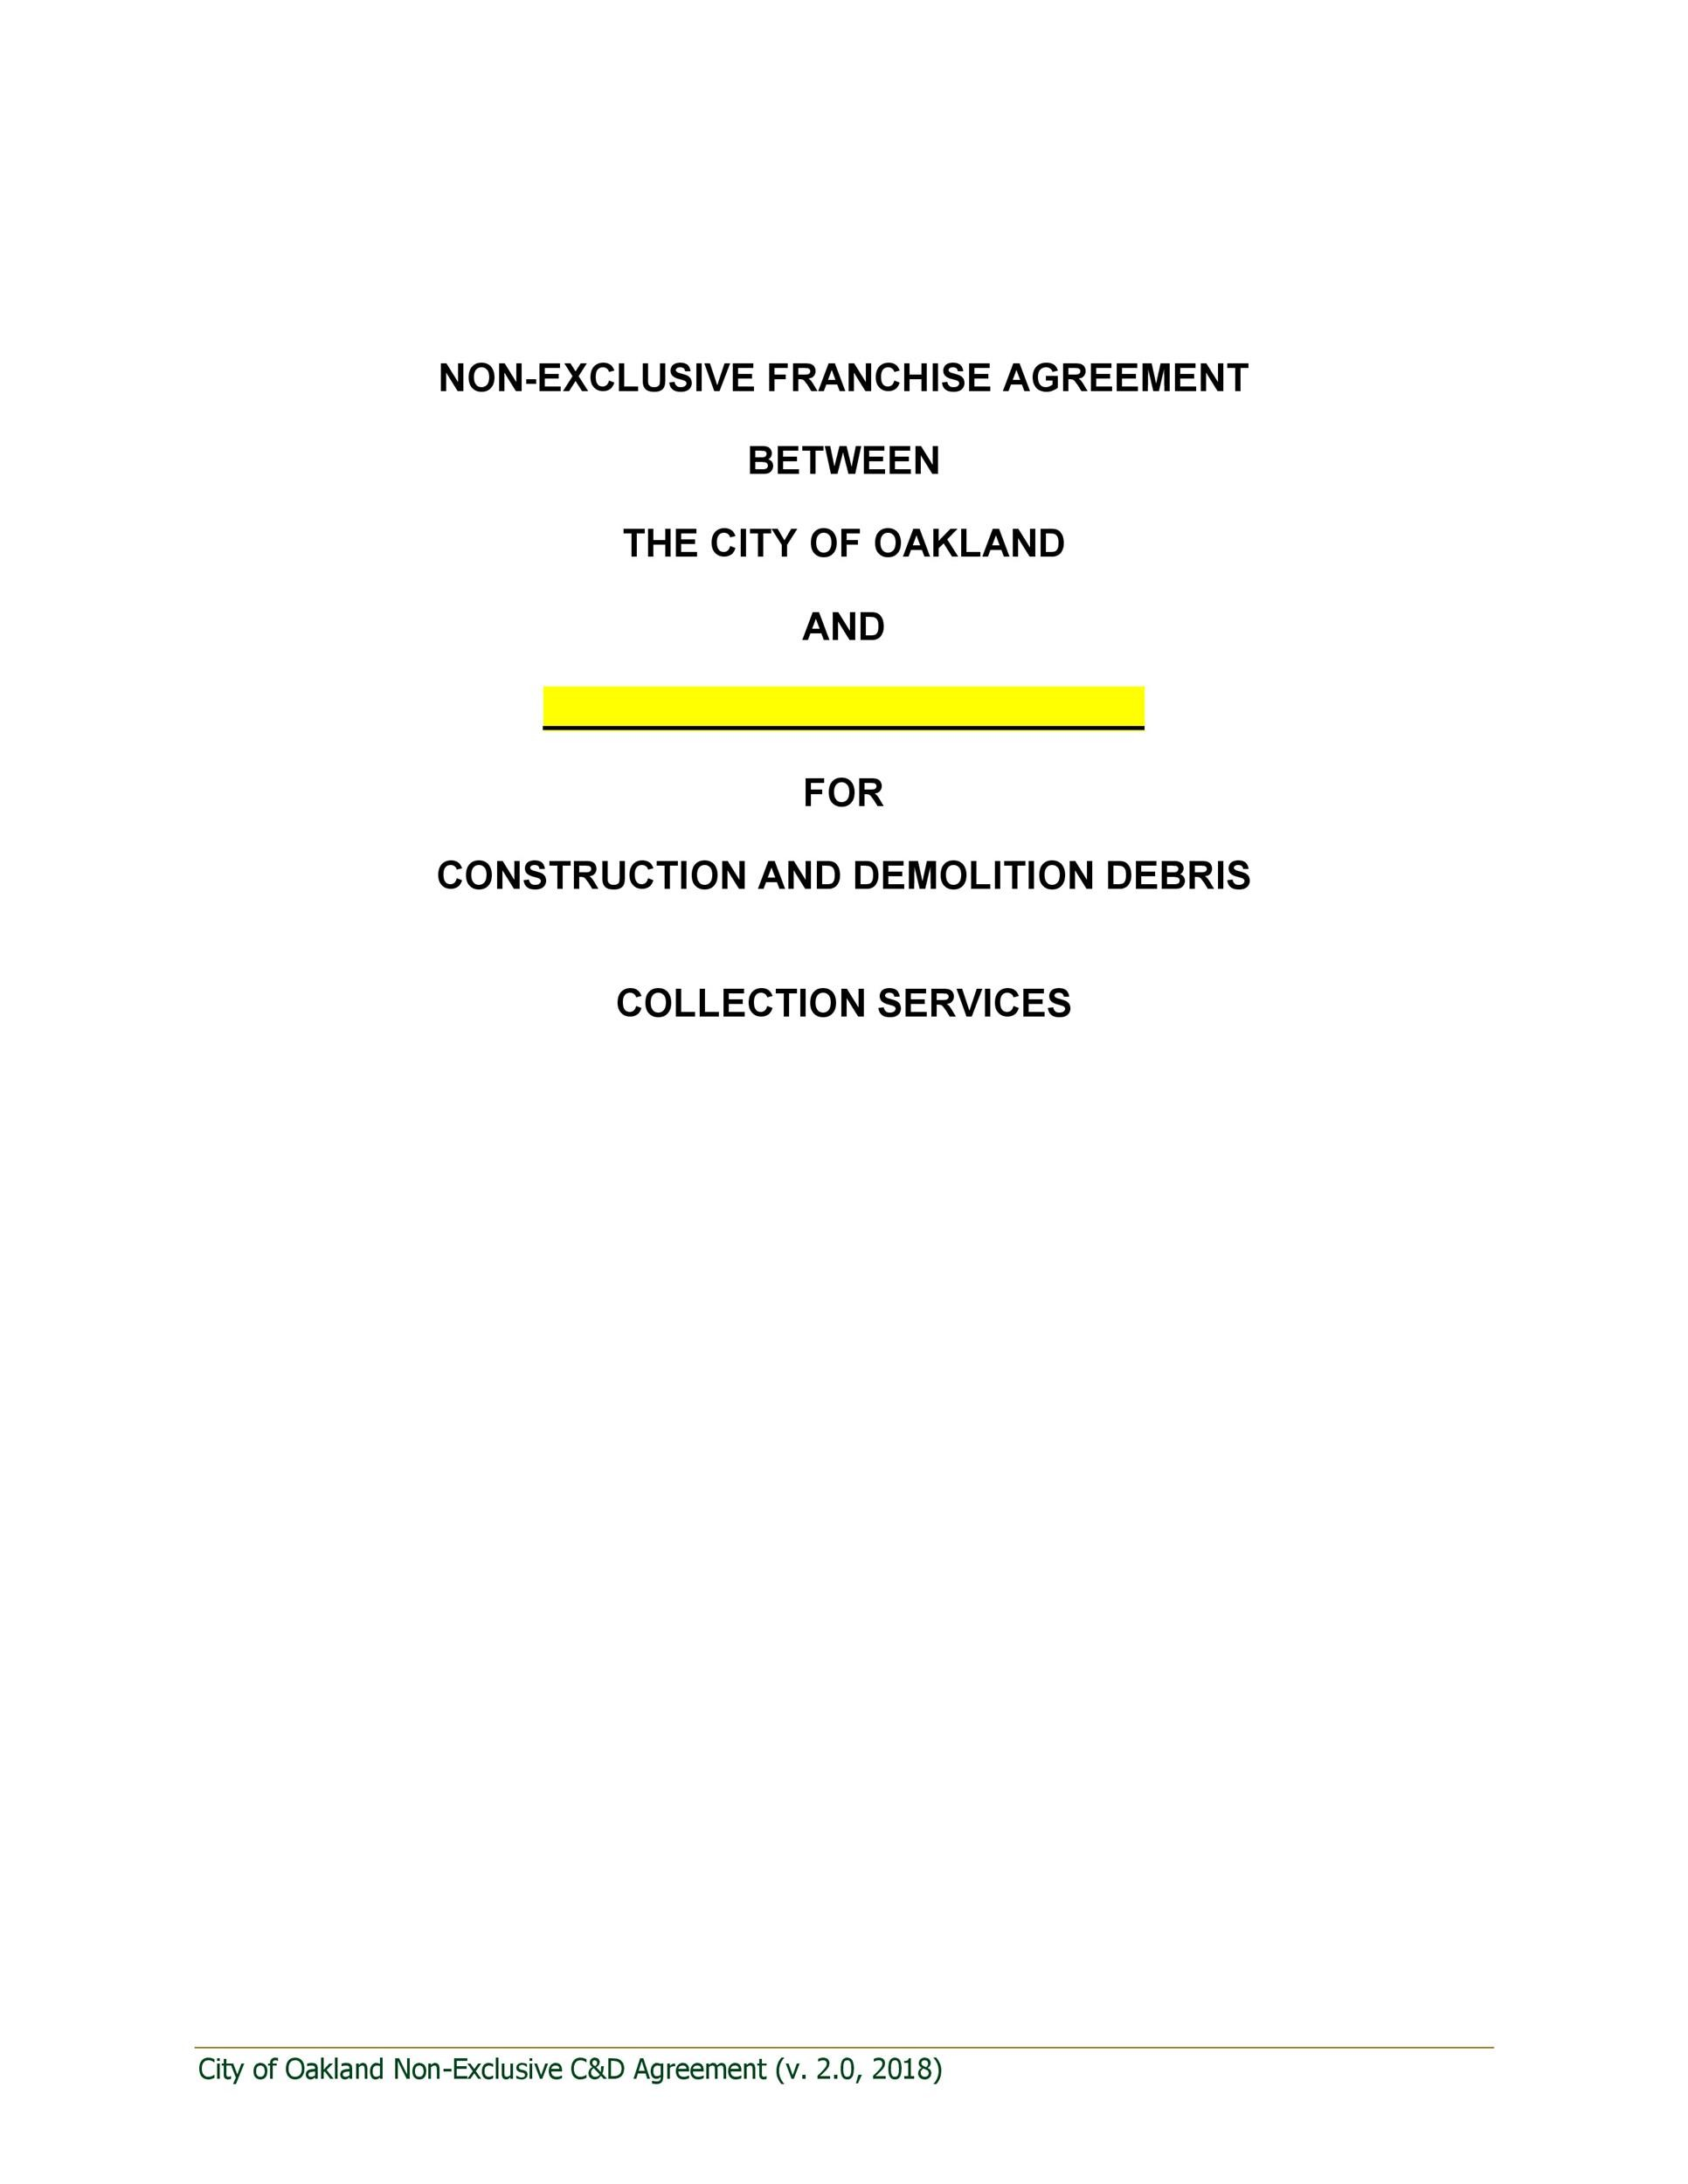 Free franchise agreement 20